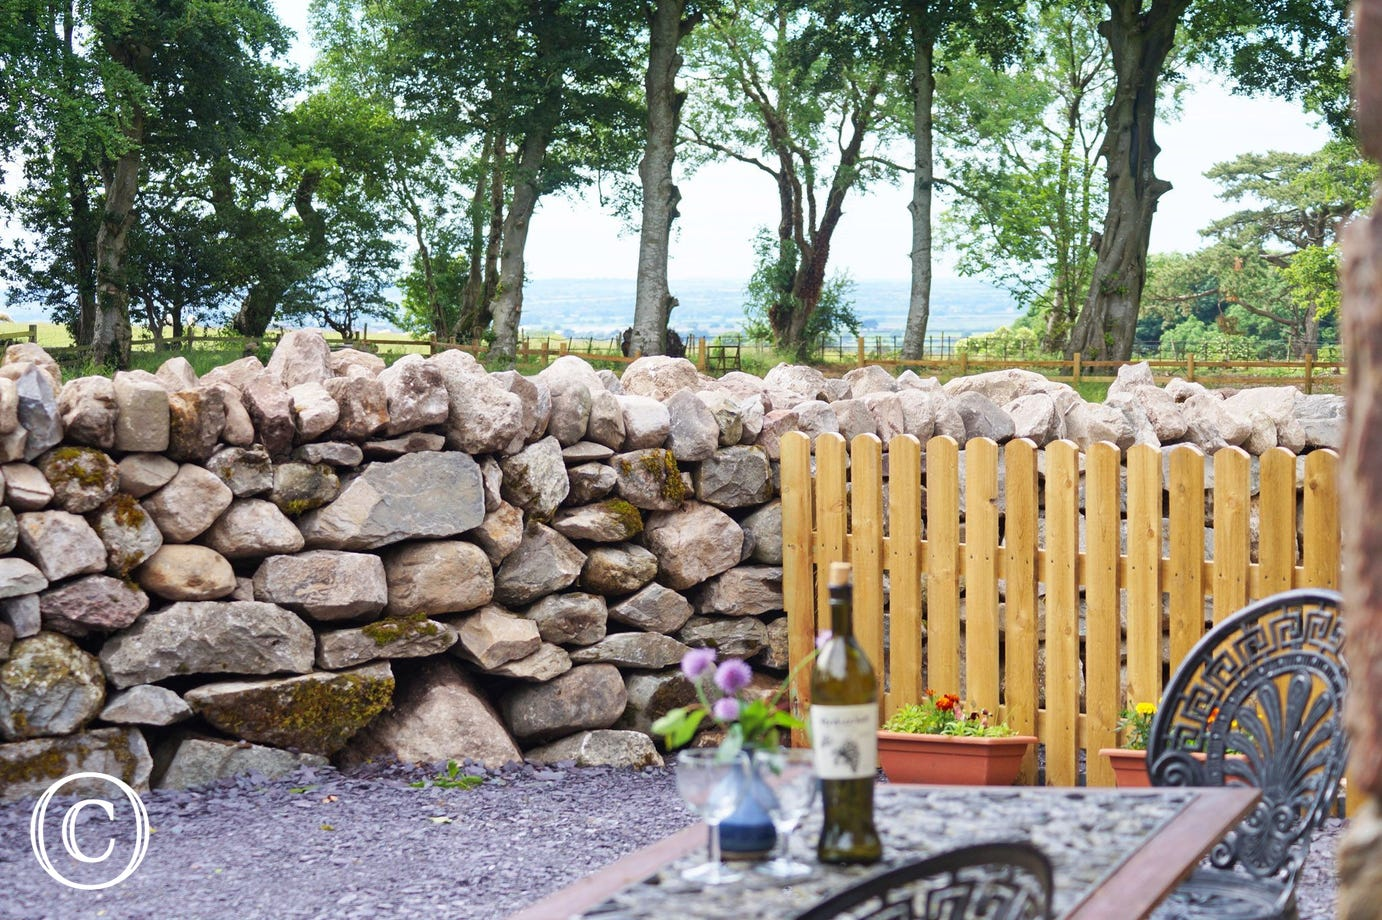 Self-catering Llanberis cottage close to Snowdon